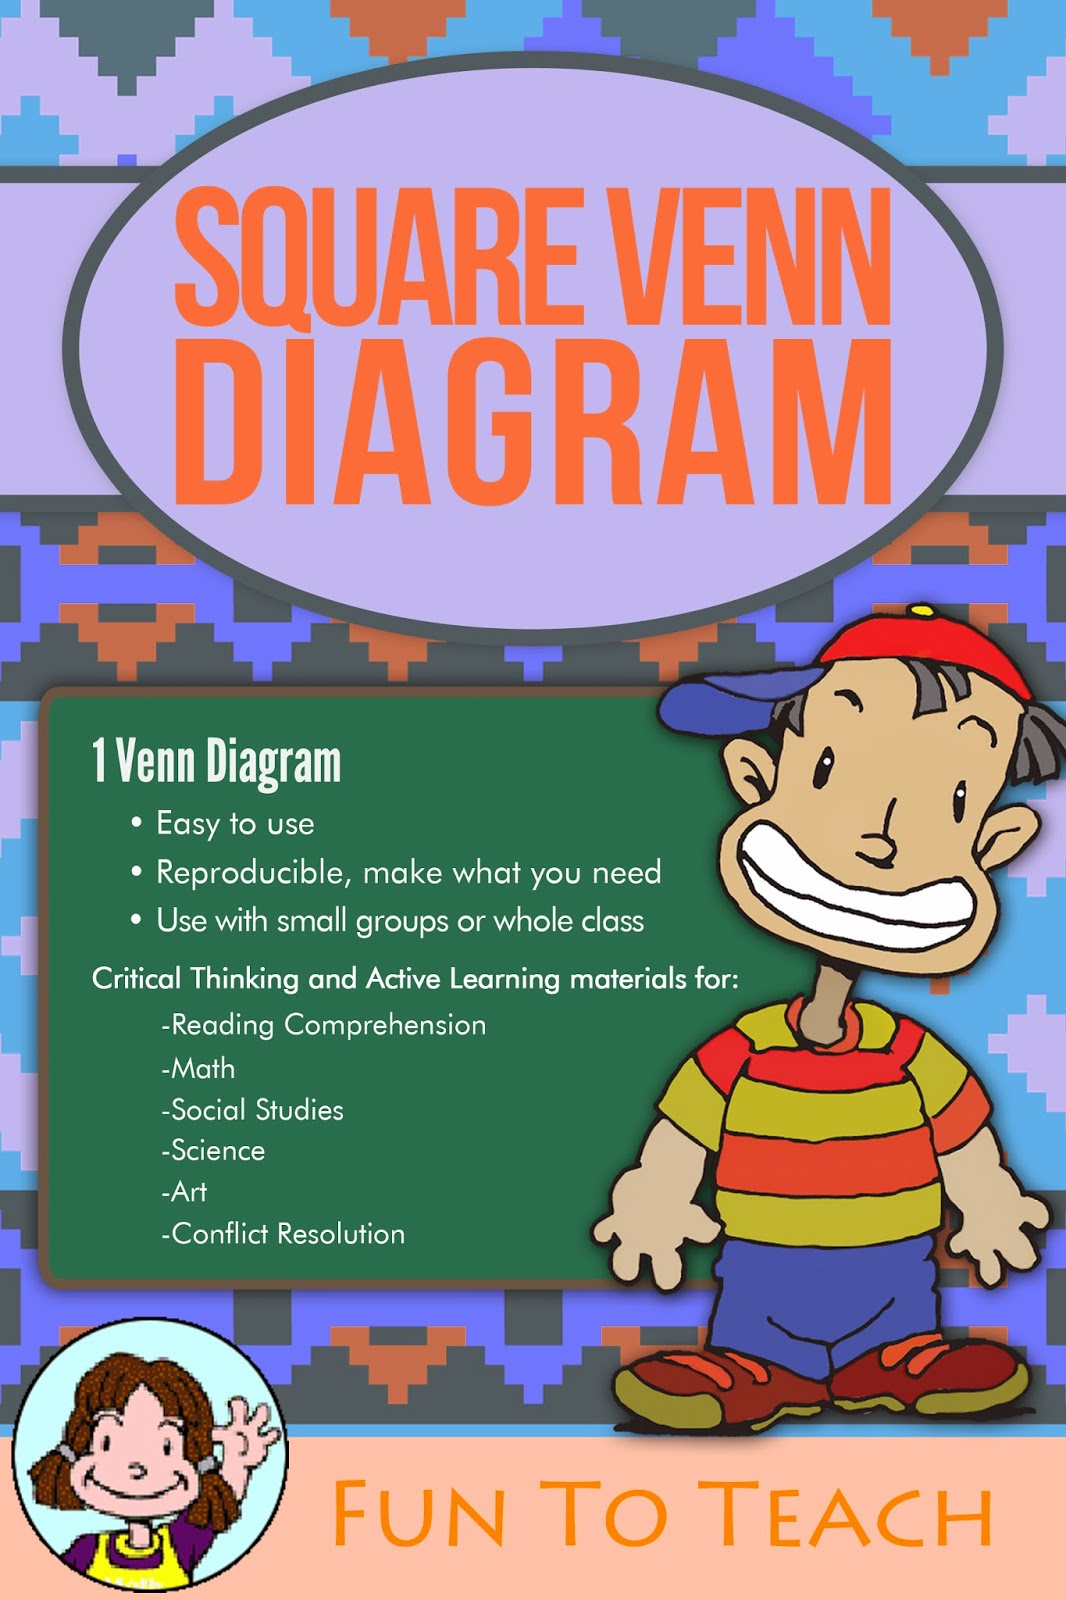 https://www.teacherspayteachers.com/Product/2-Square-Venn-Diagram-Graphic-Organizer-and-Lesson-Plan-88098